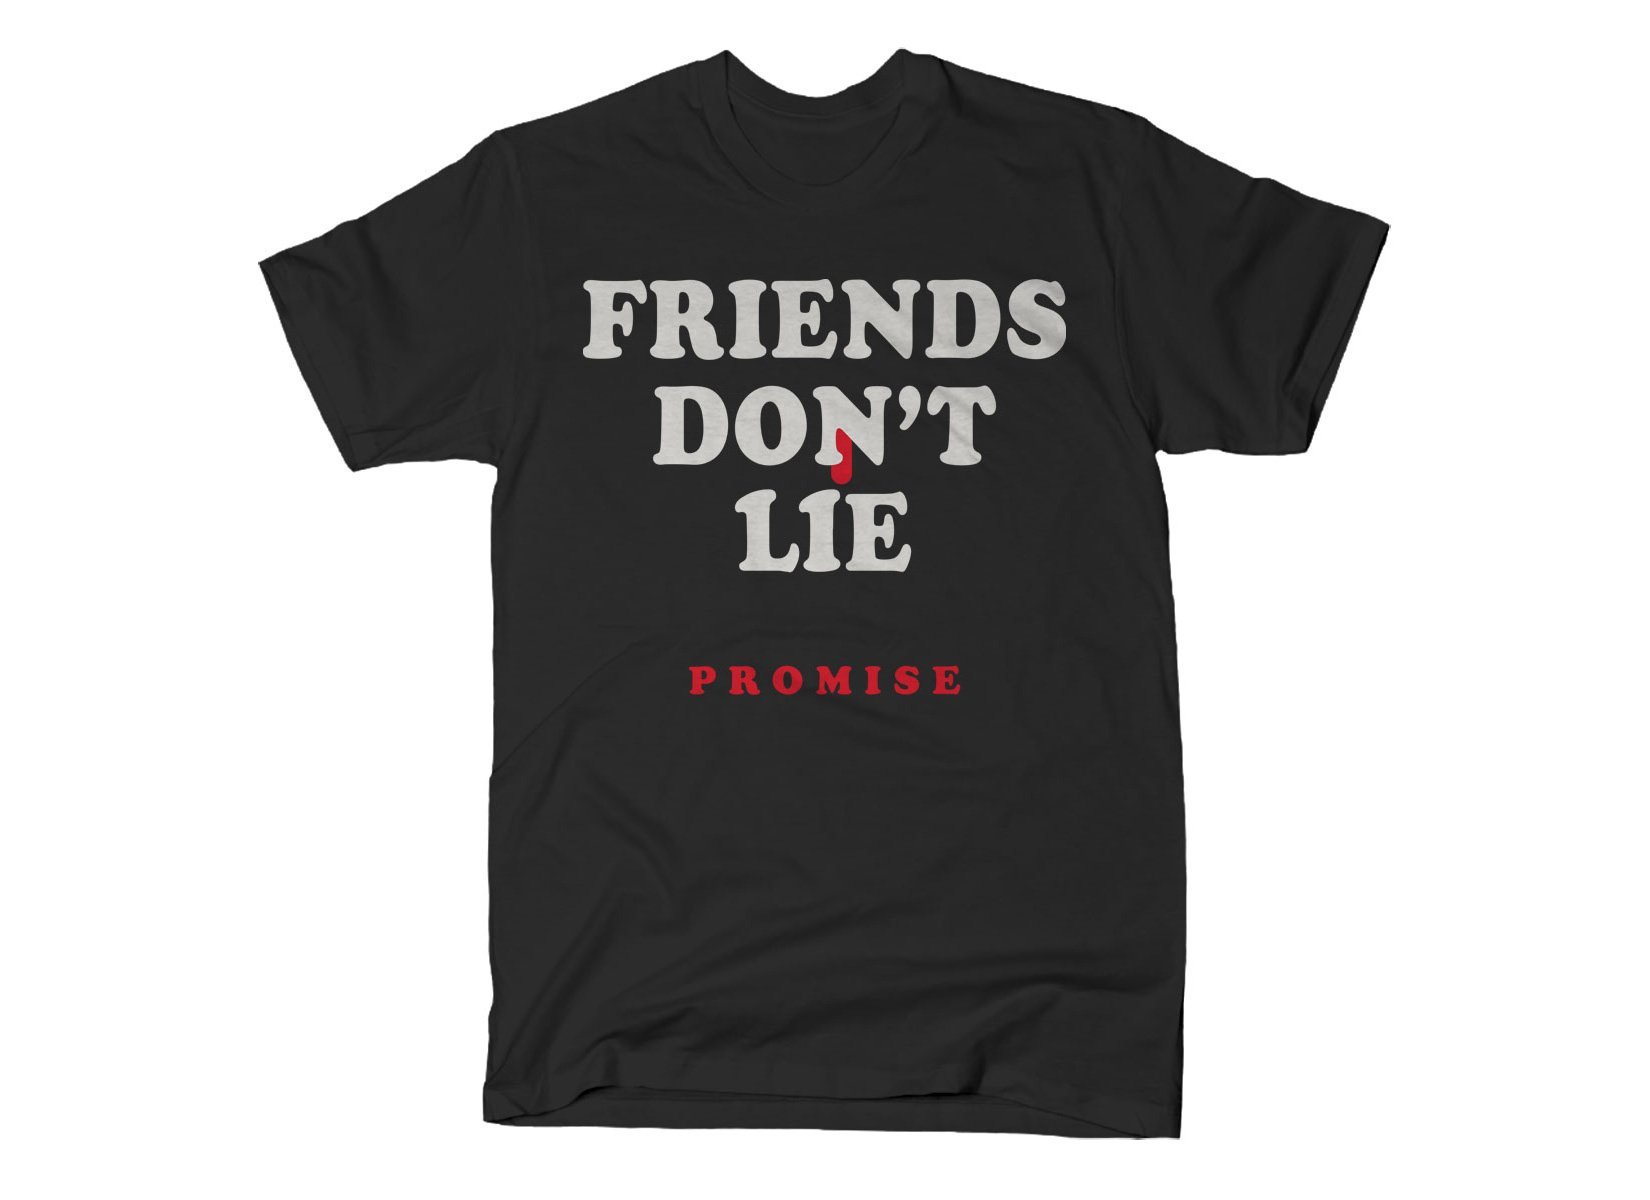 Friends Don't Lie on Mens T-Shirt